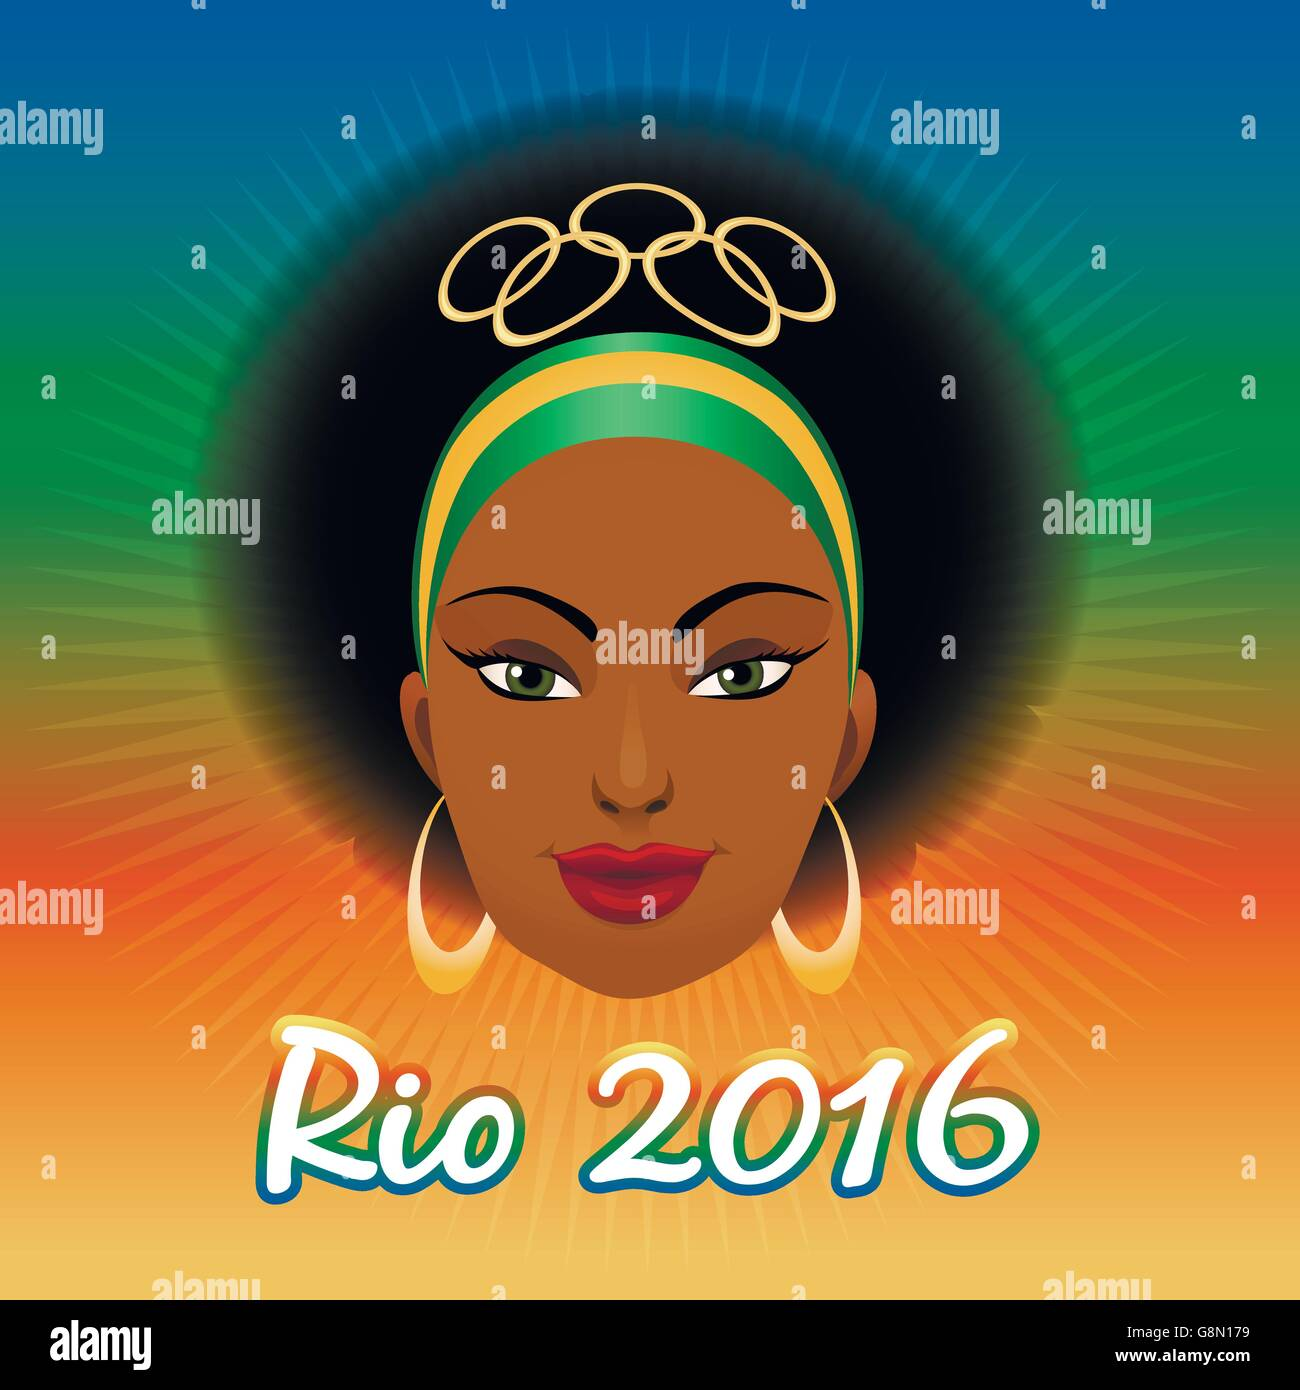 Rio Olympic Games Emblem with woman face against colorful festive background. - Stock Vector